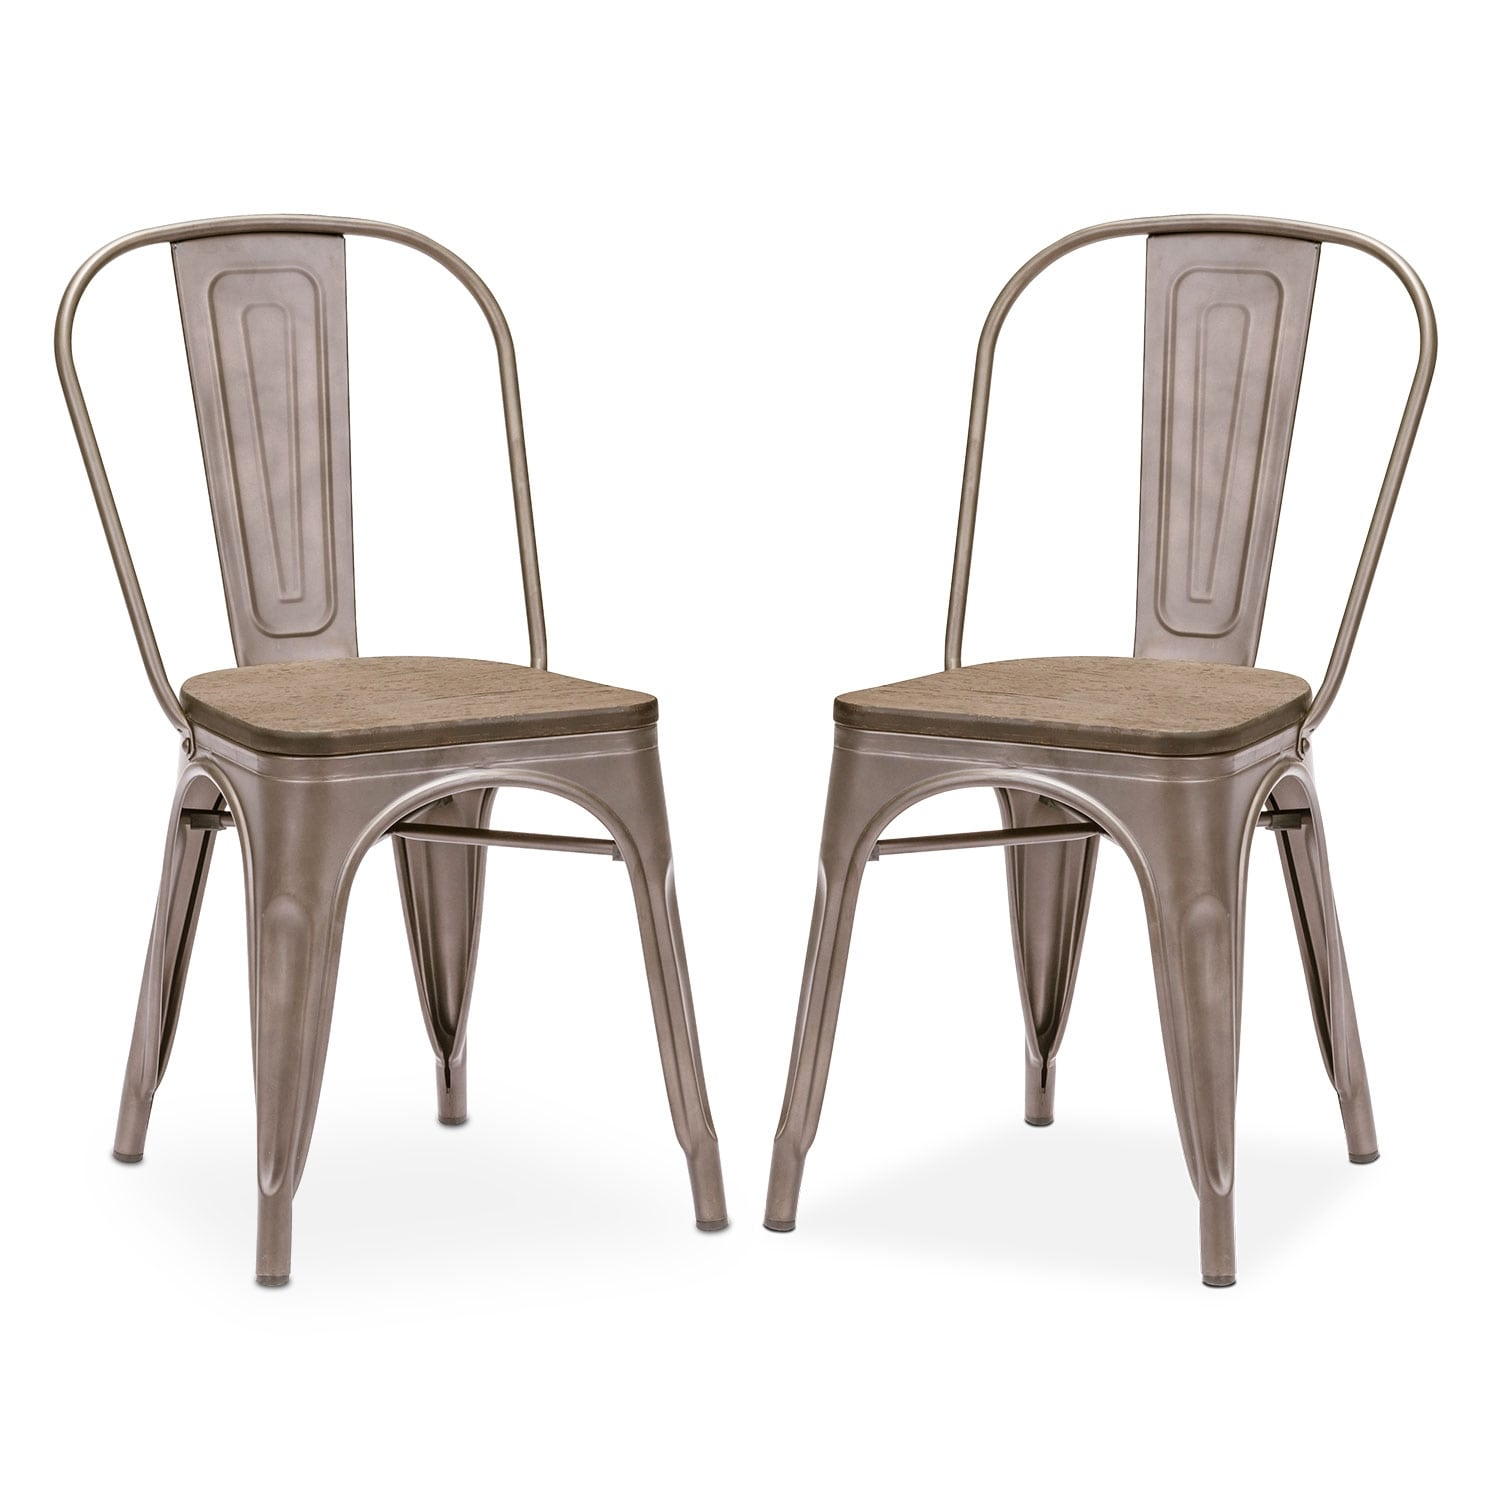 Dining Room Furniture - Rustica 2-Pack Chairs - Steel